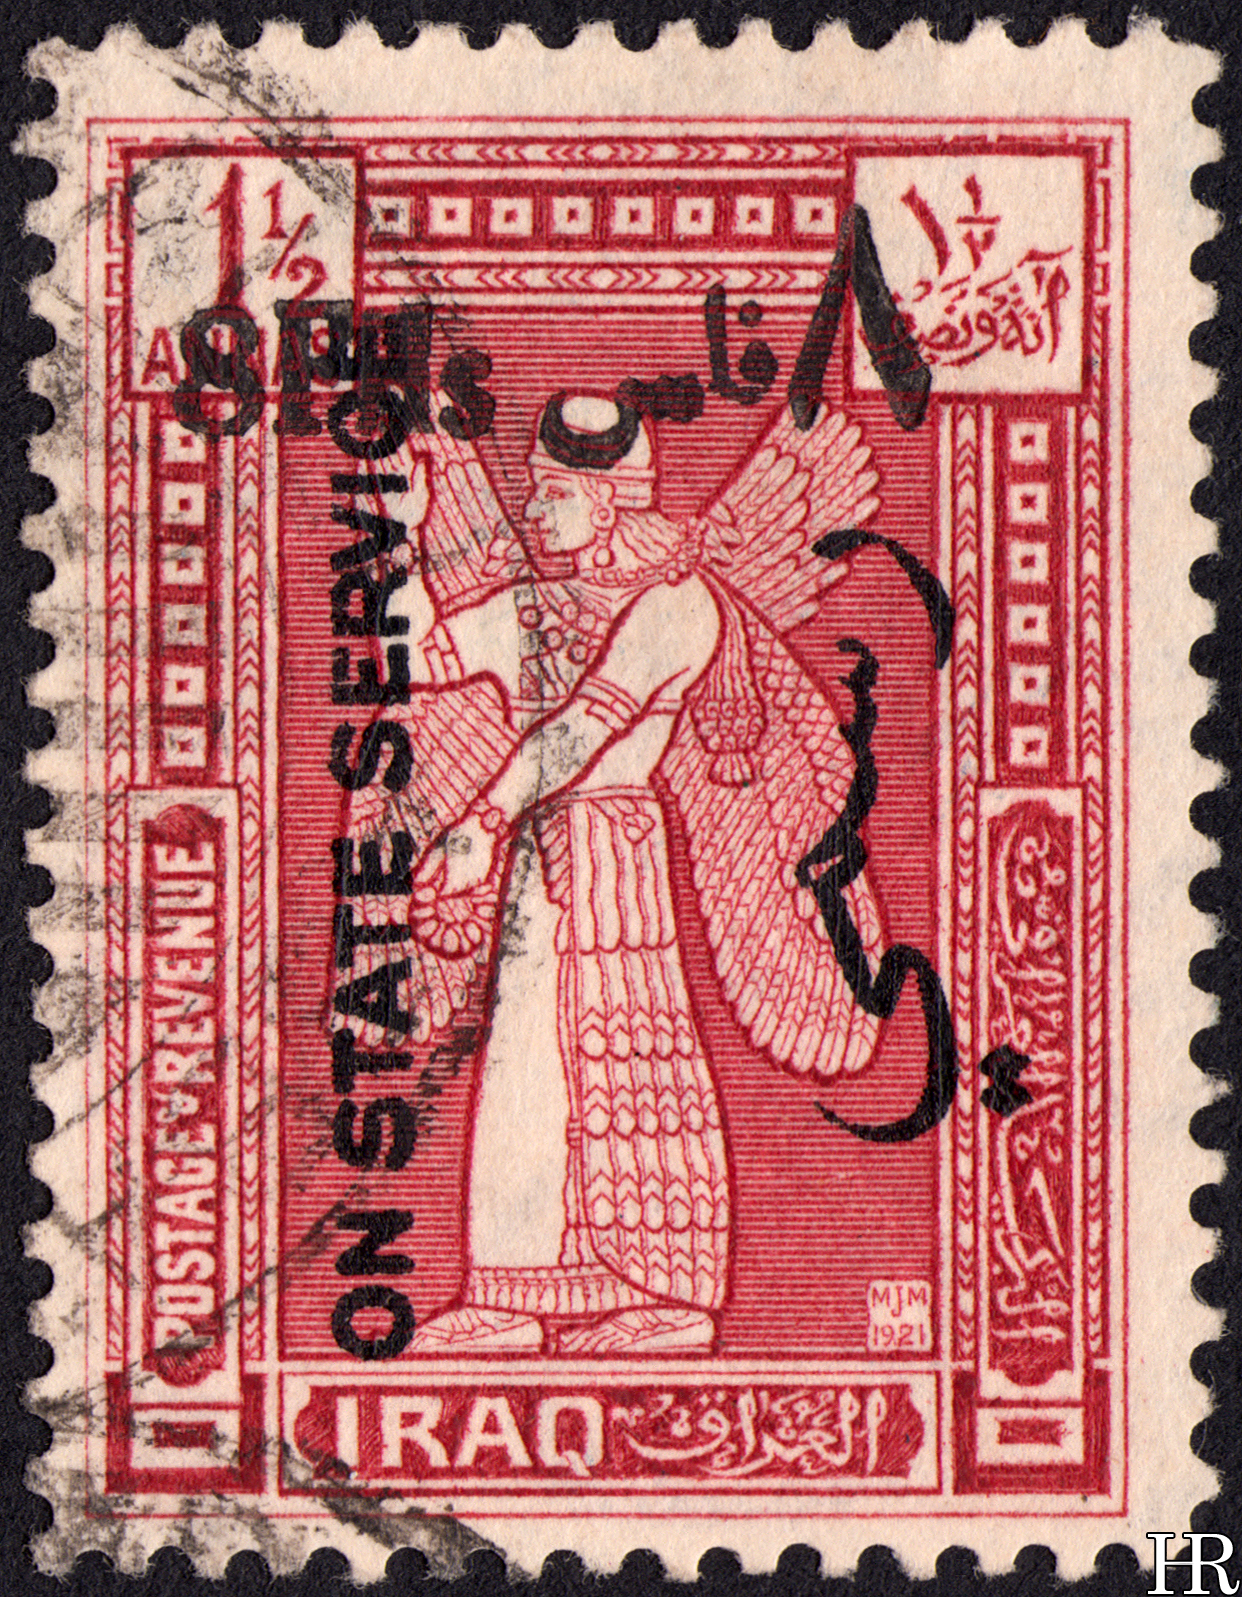 1½ anna stamp of the 1923 issue with official service overprint, adapted for use in 1932. Care was taken that, where possible, the new-currency overprints should be placed onto the old-currency stamps which provided the same service. Pre-1932, 1½ annas was the rate for mailing a basic-weight letter within Iraq, and after the currency change the rate became 8 fils. Evidently it was thought more appropriate to use obsolete stamps of the correct rate, rather than 1931 stamps of an incorrect rate.